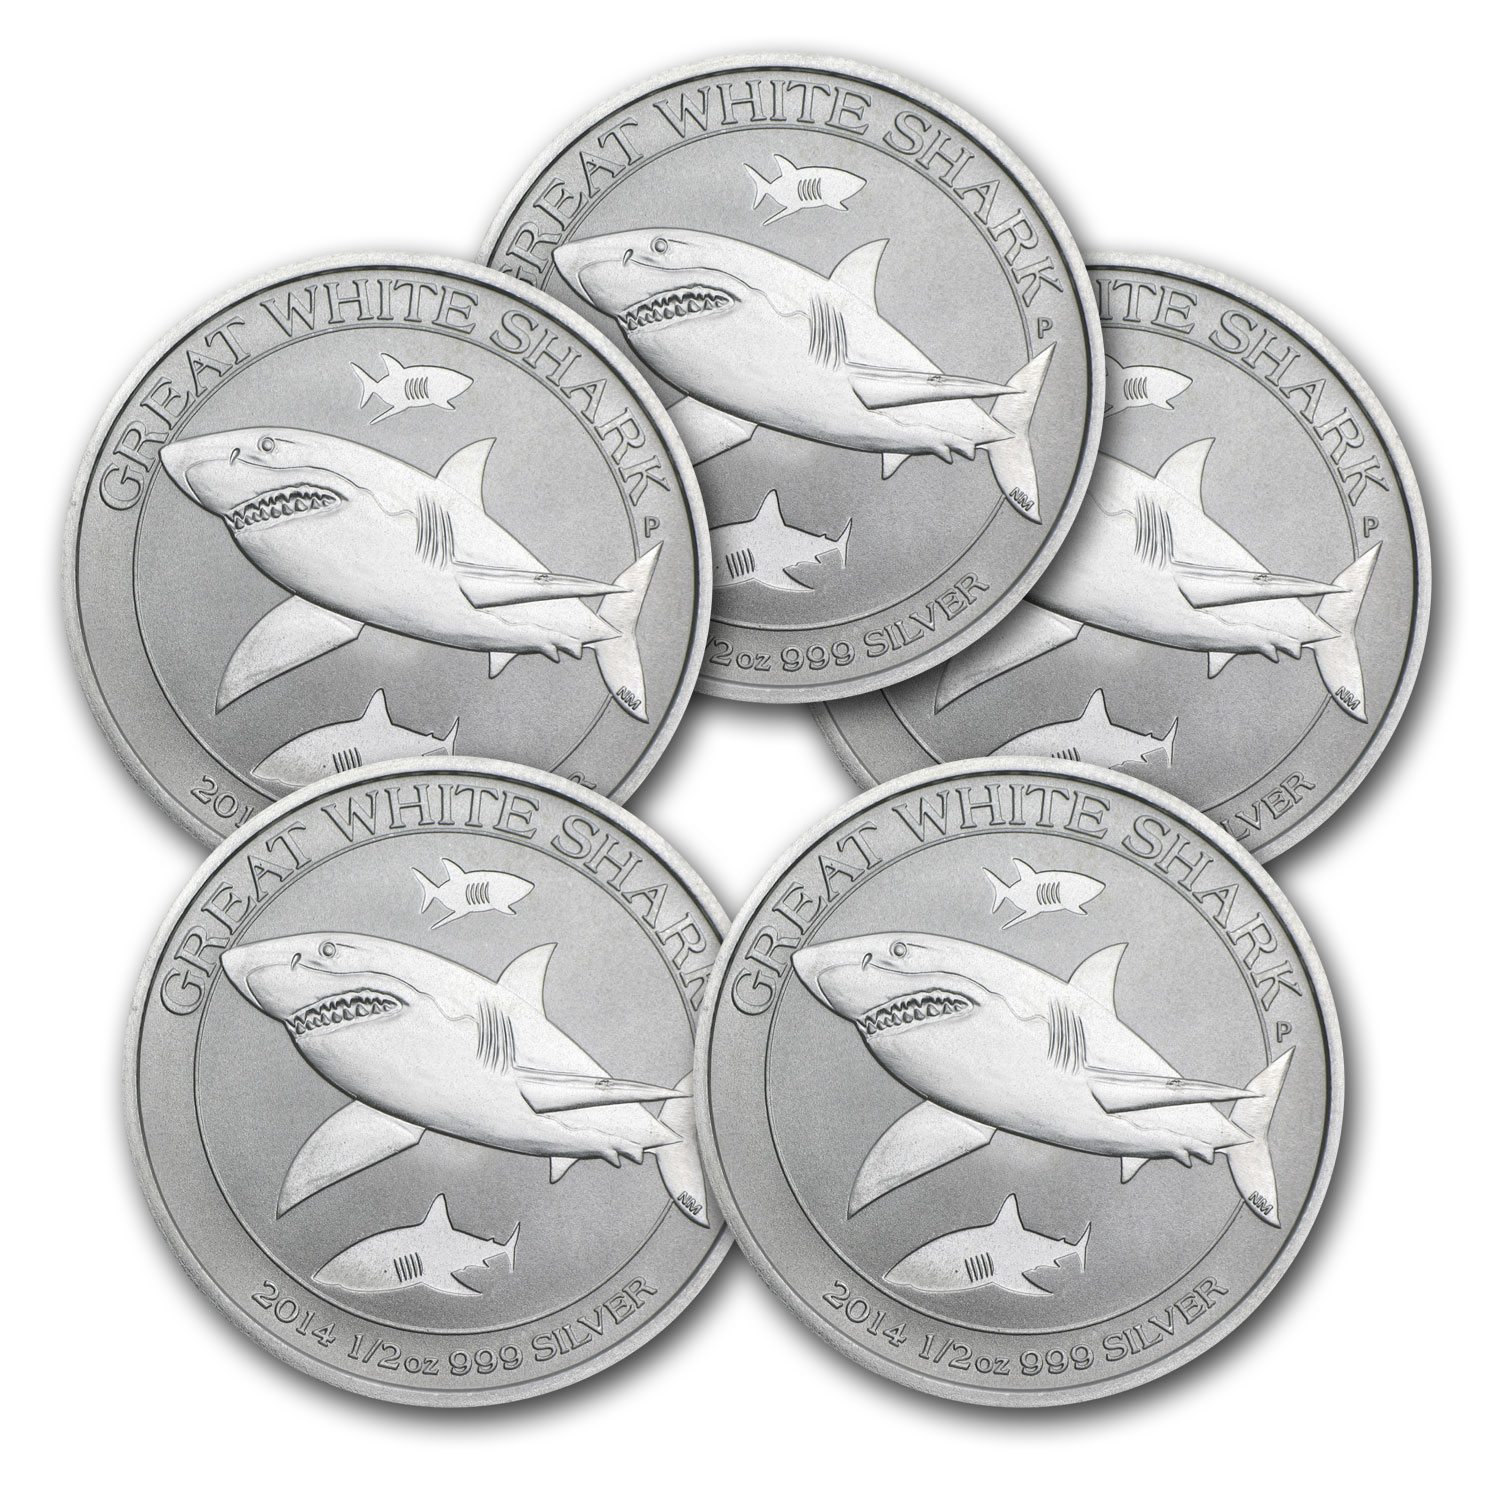 2014 Australia 1/2 oz Silver Great White Shark (Lot of 5)